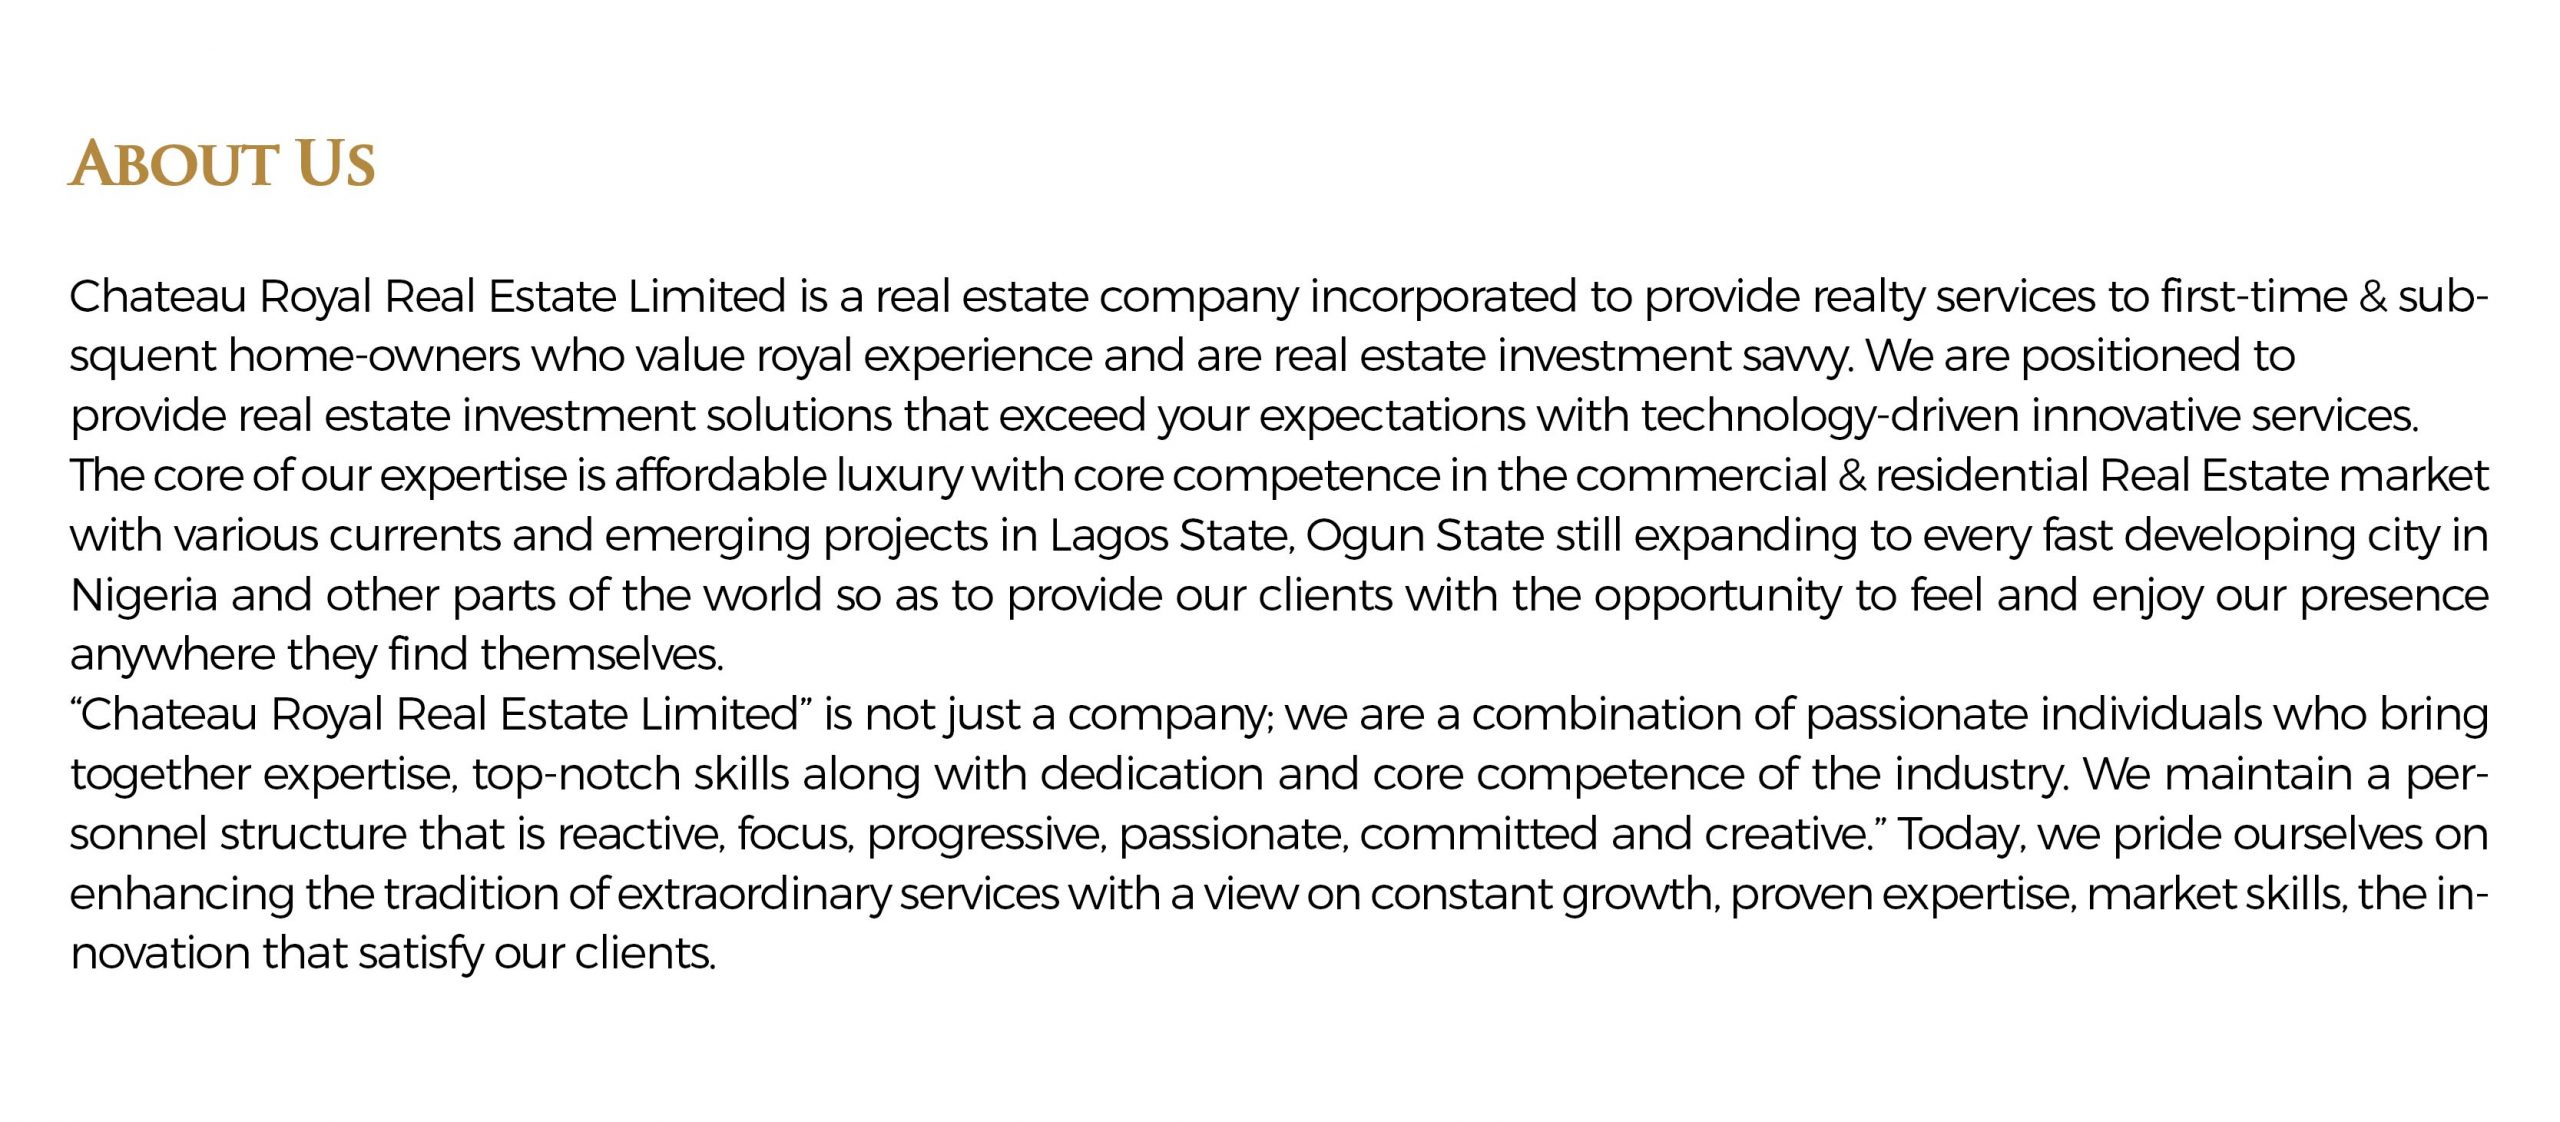 Profile 'about us